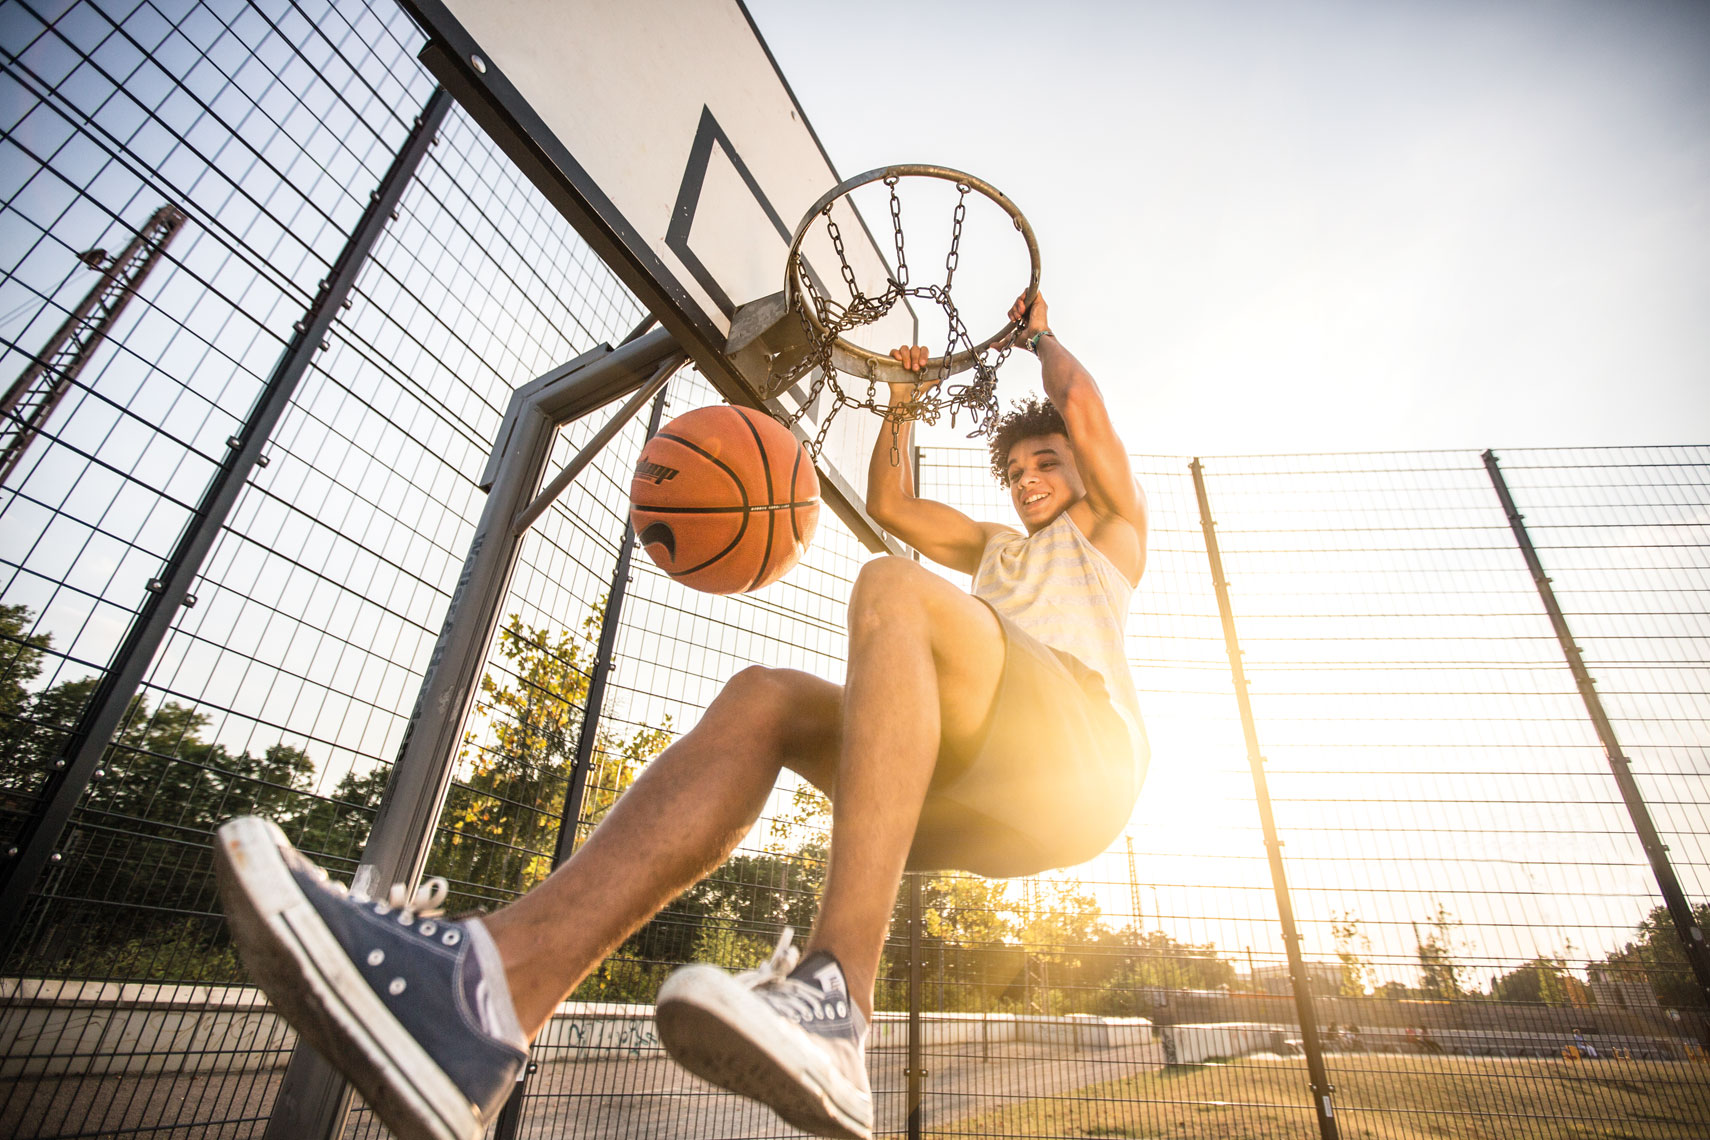 Urban Sports | Basketball